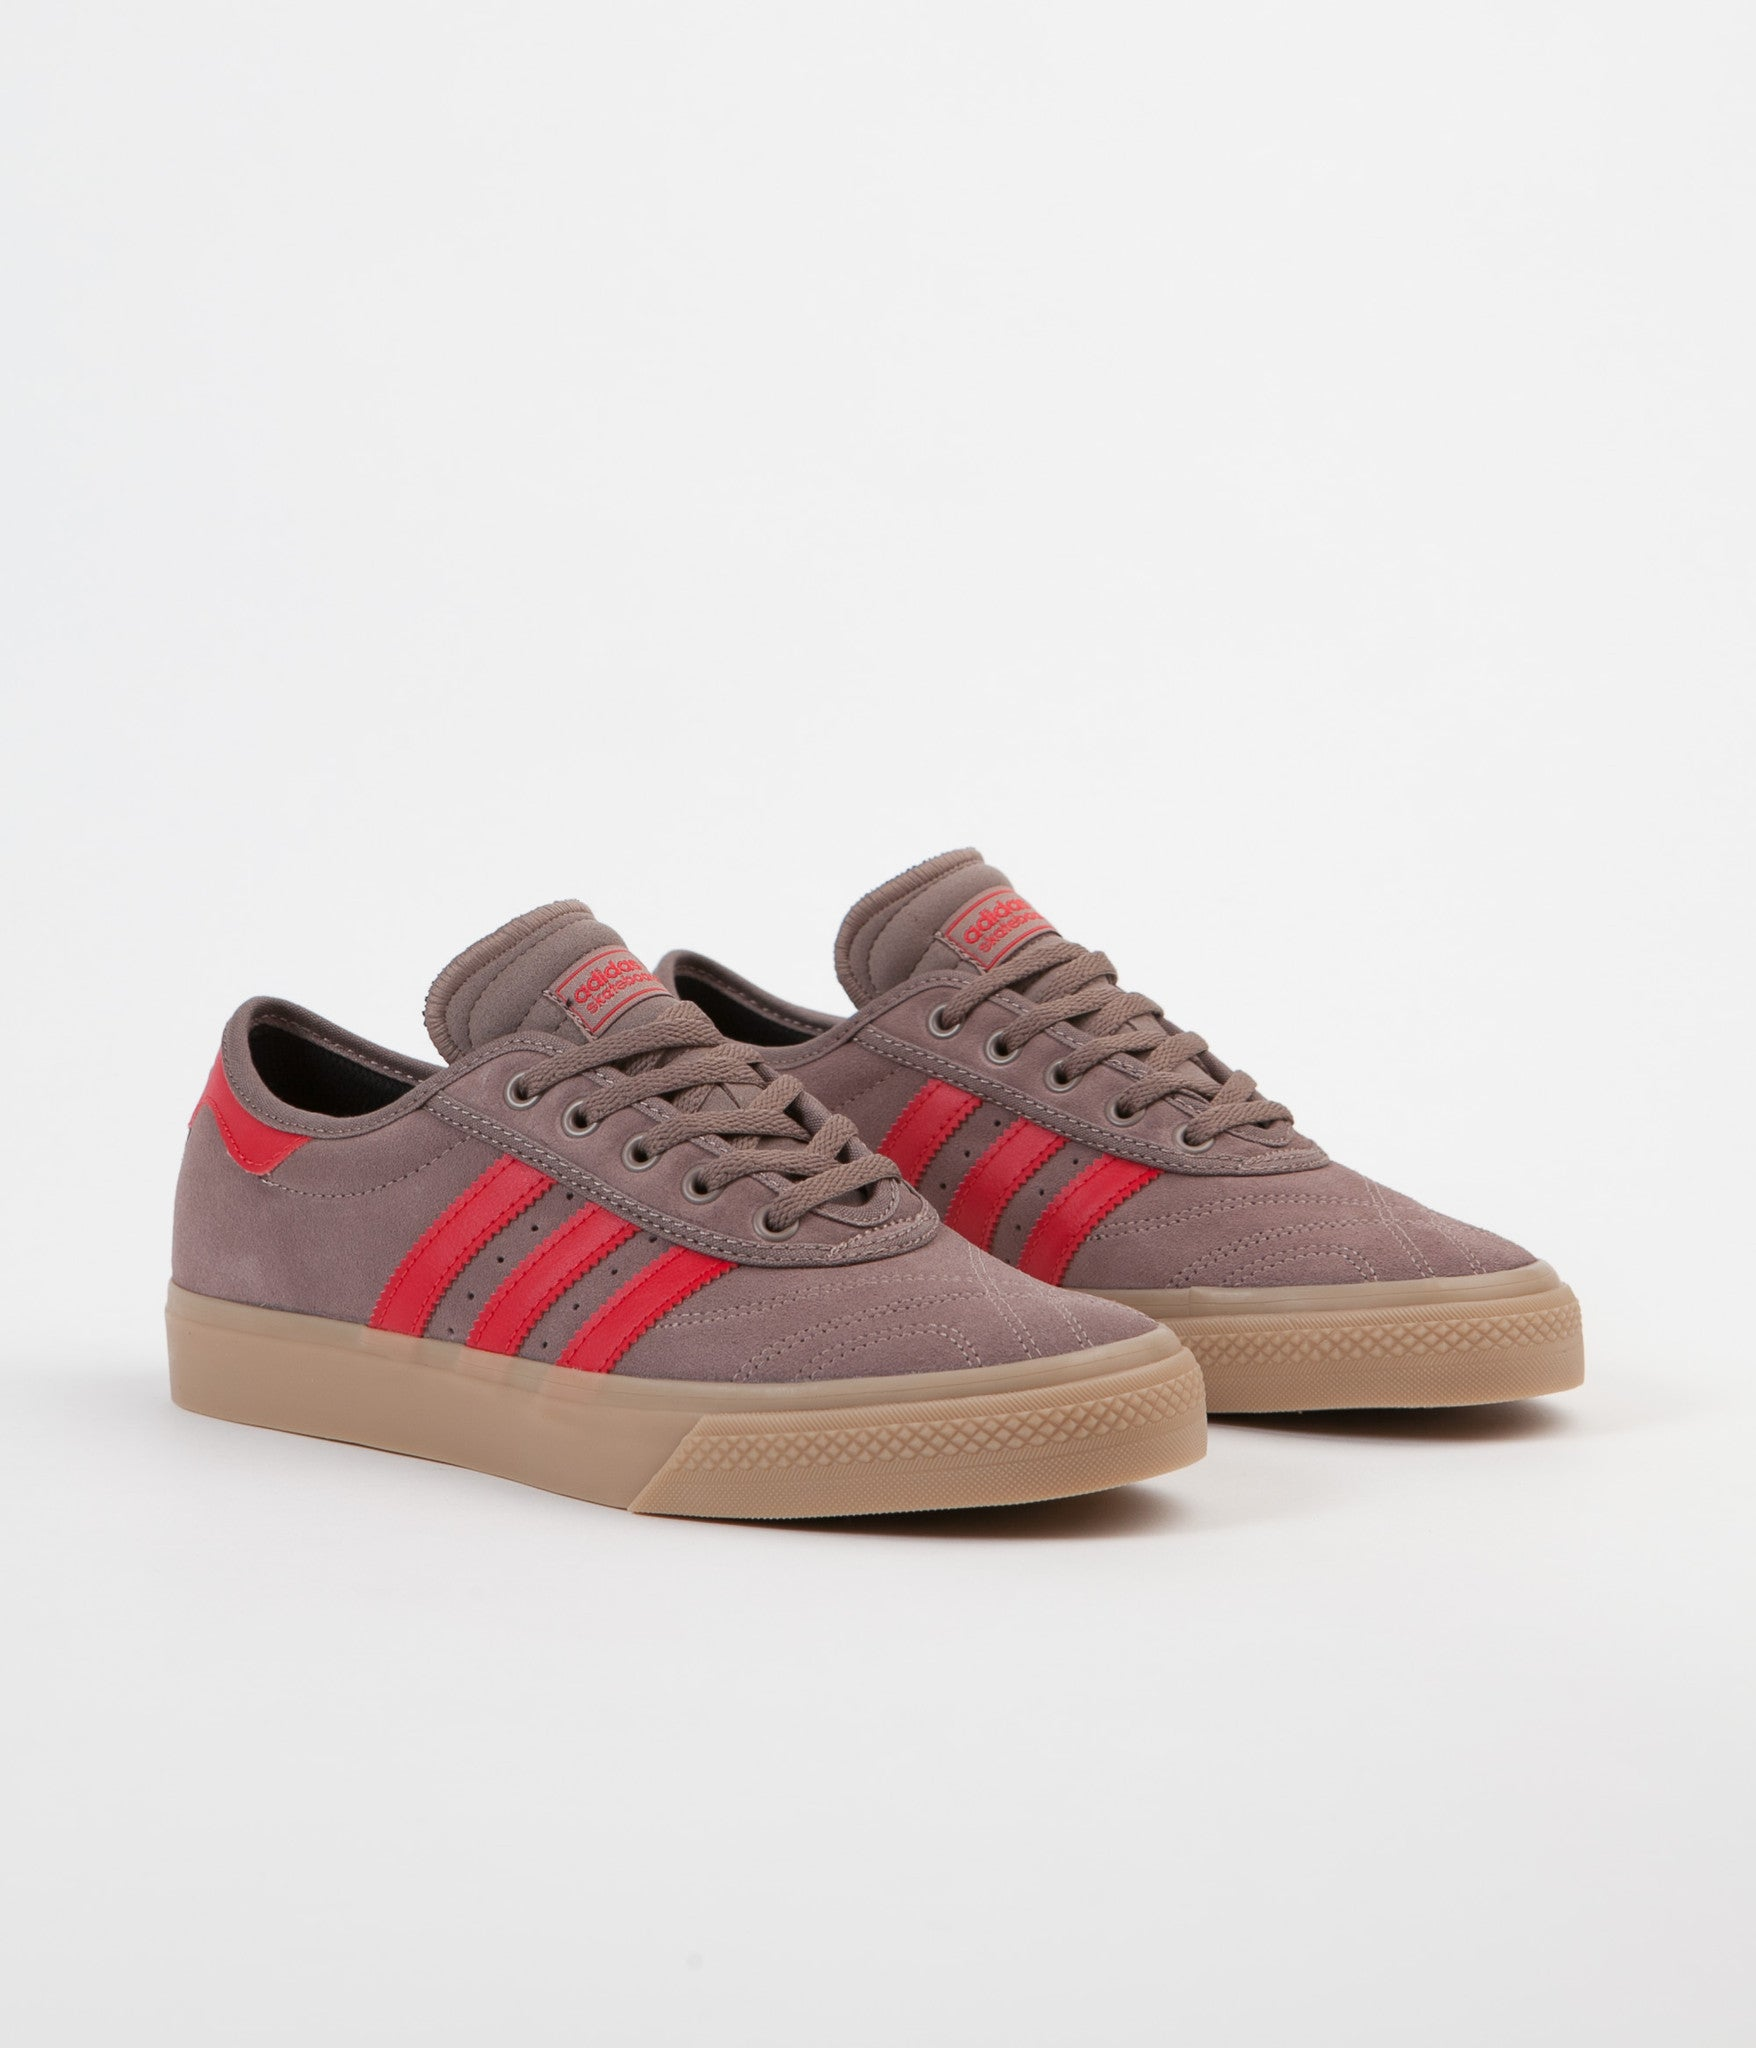 Adidas Adi-Ease Premiere Adv Shoes - Trace Brown / Scarlet / Gum